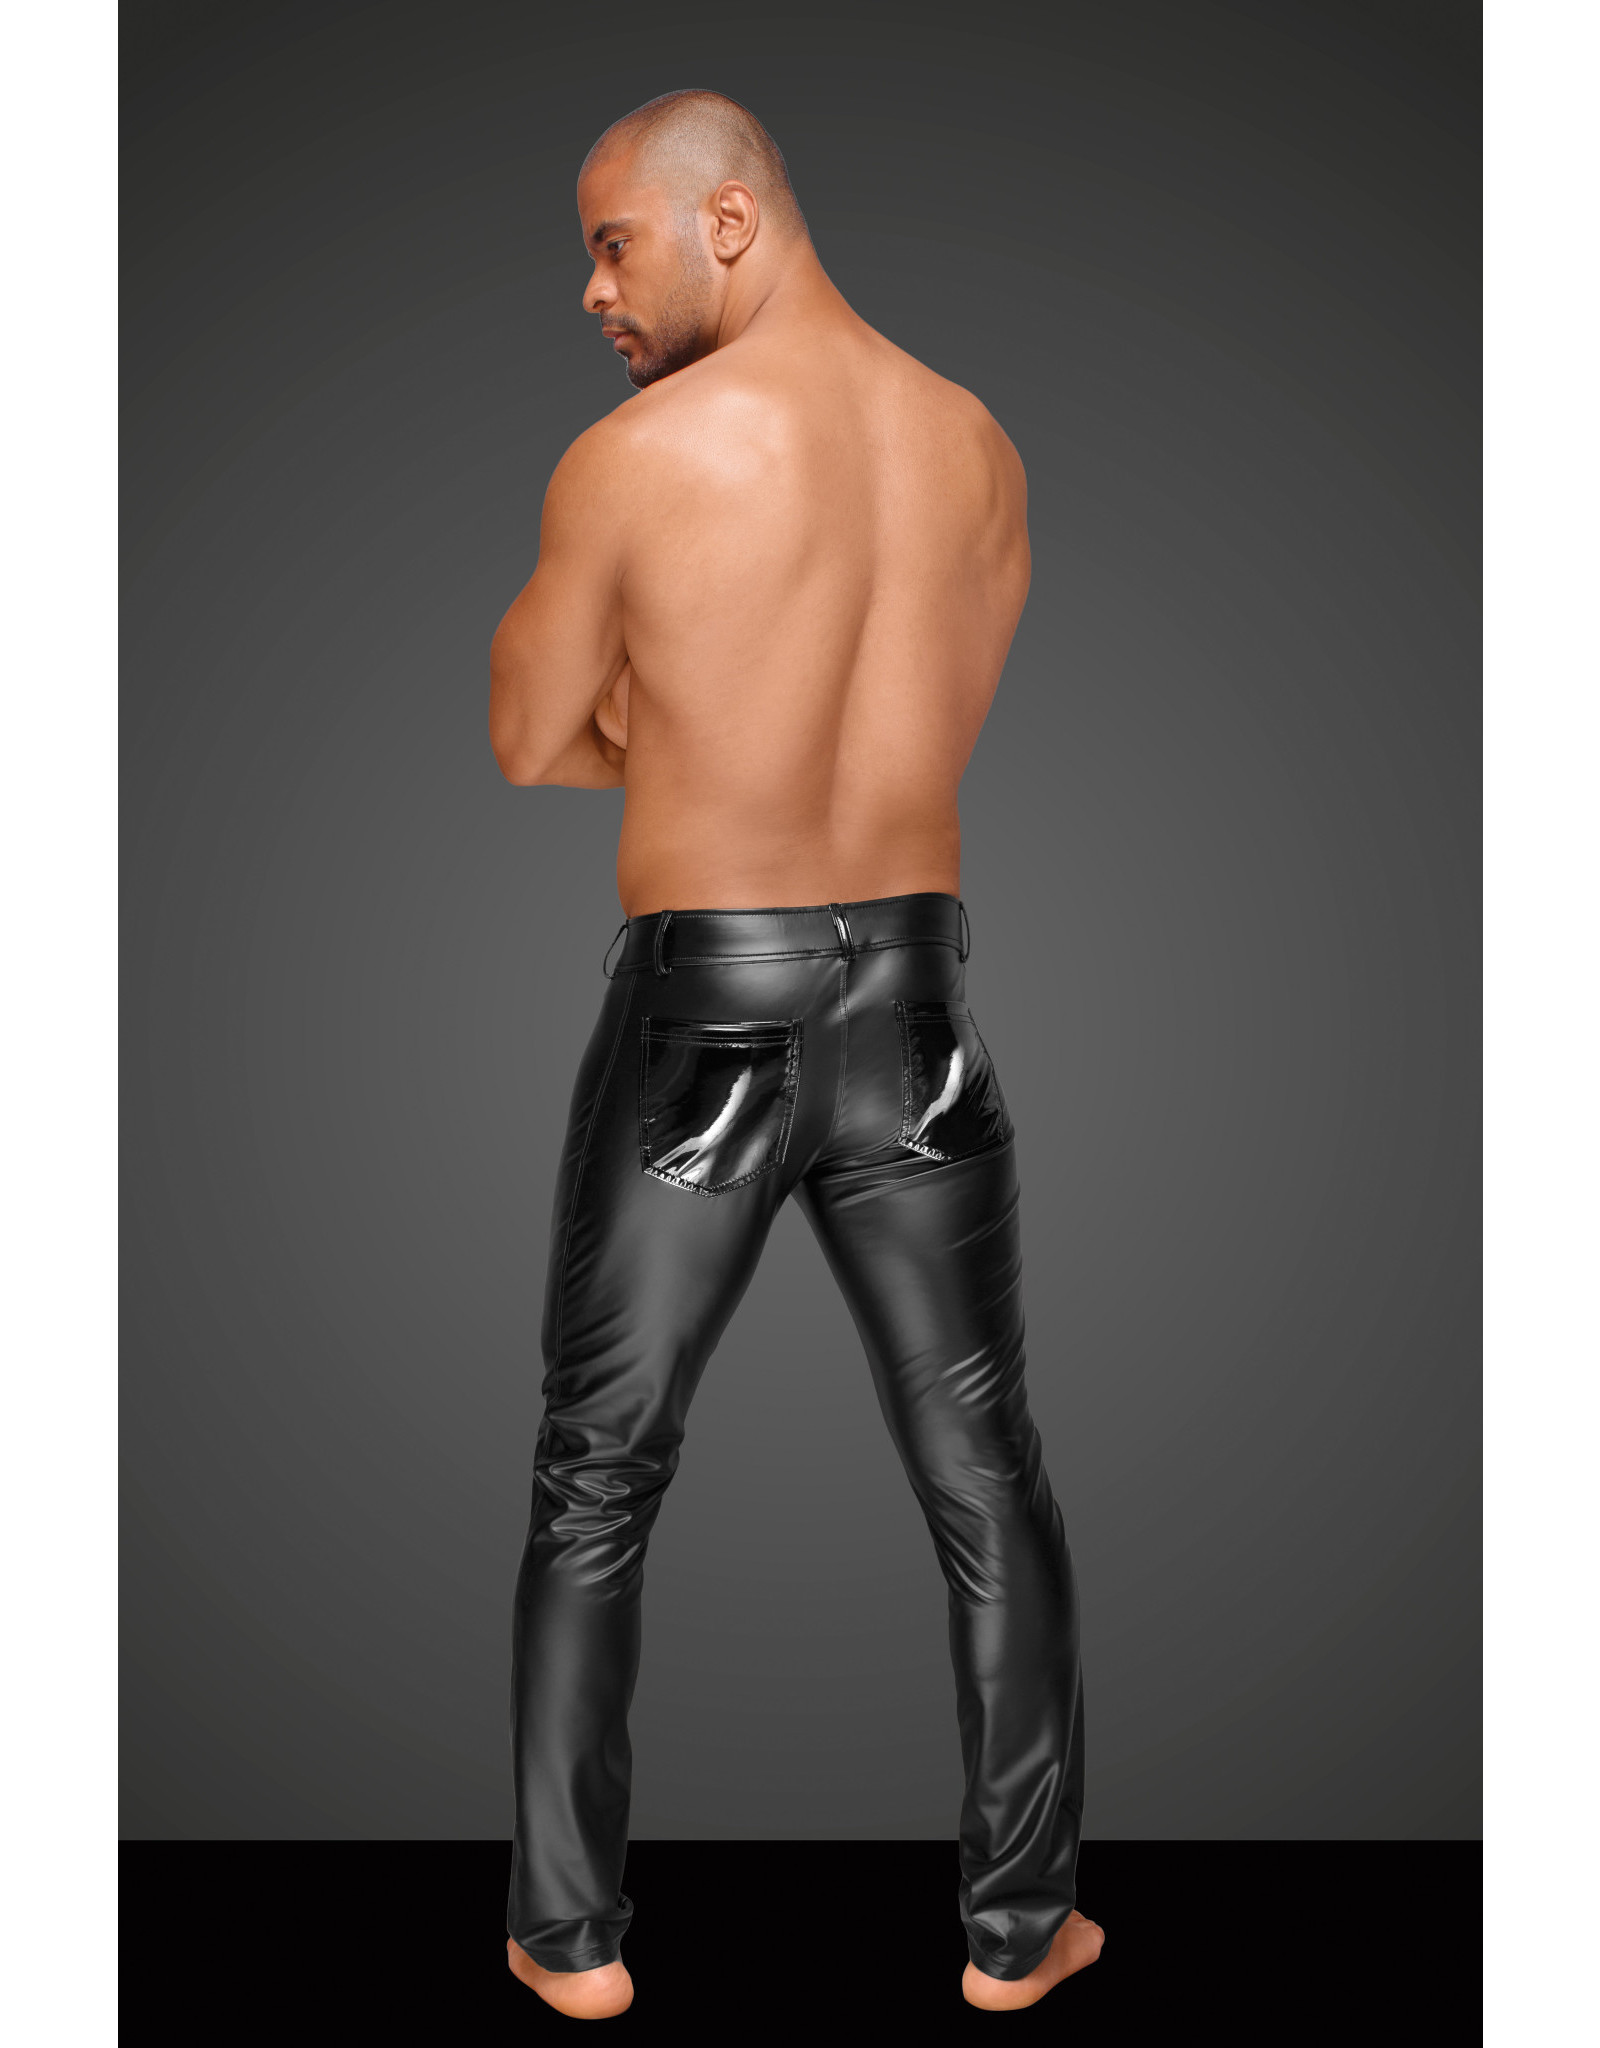 NOIR HANDMADE - POWER WET LOOK MEN'S TROUSERS WITH WITH PVC - LARGE